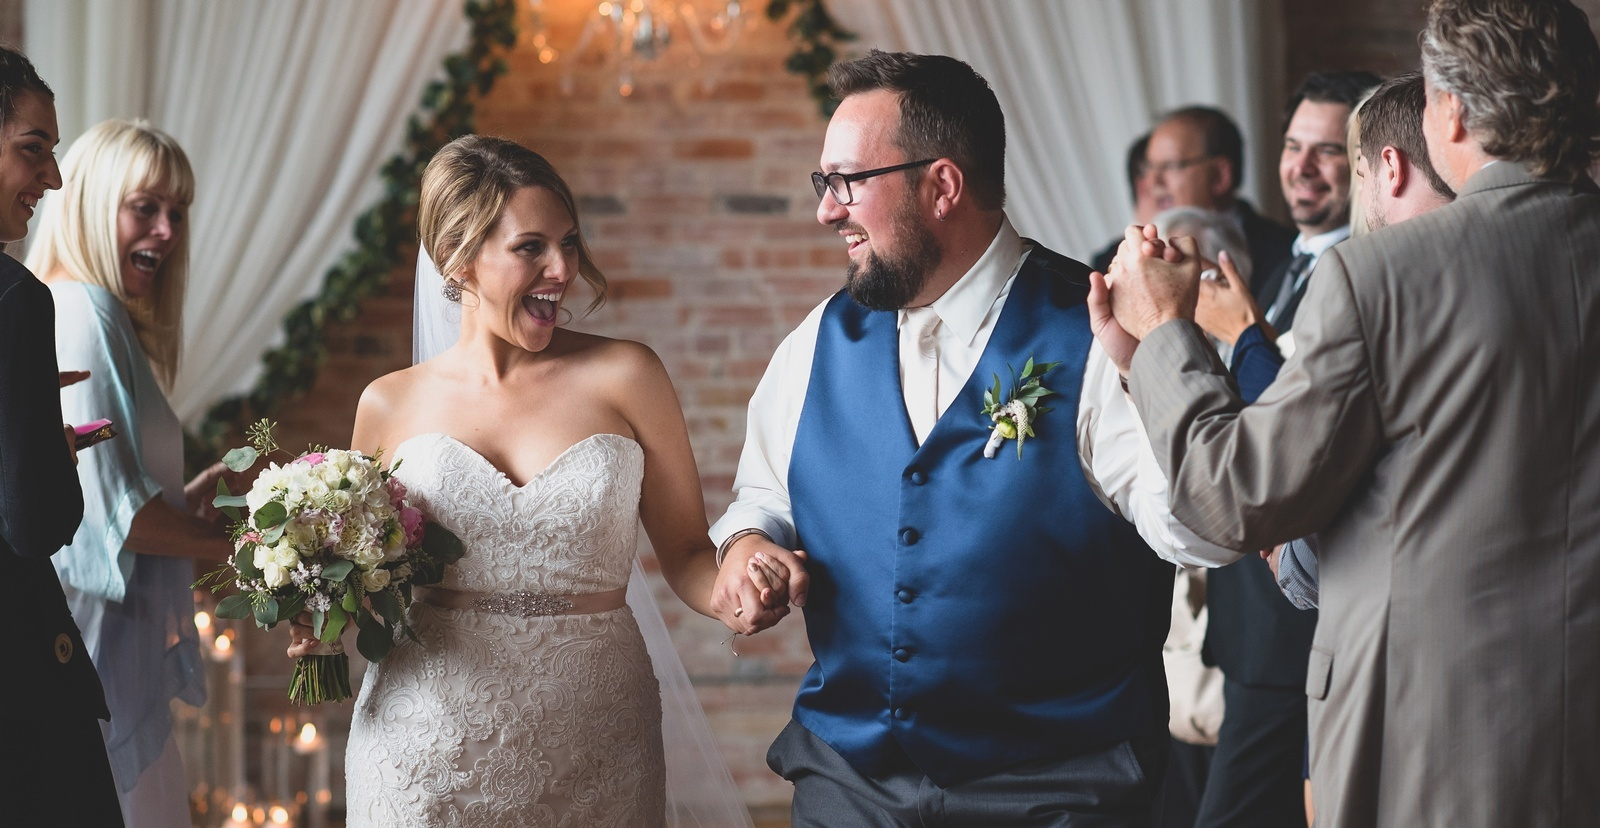 Couple Walking on aisle - Wedding Photography Stratford by Devon Crowell